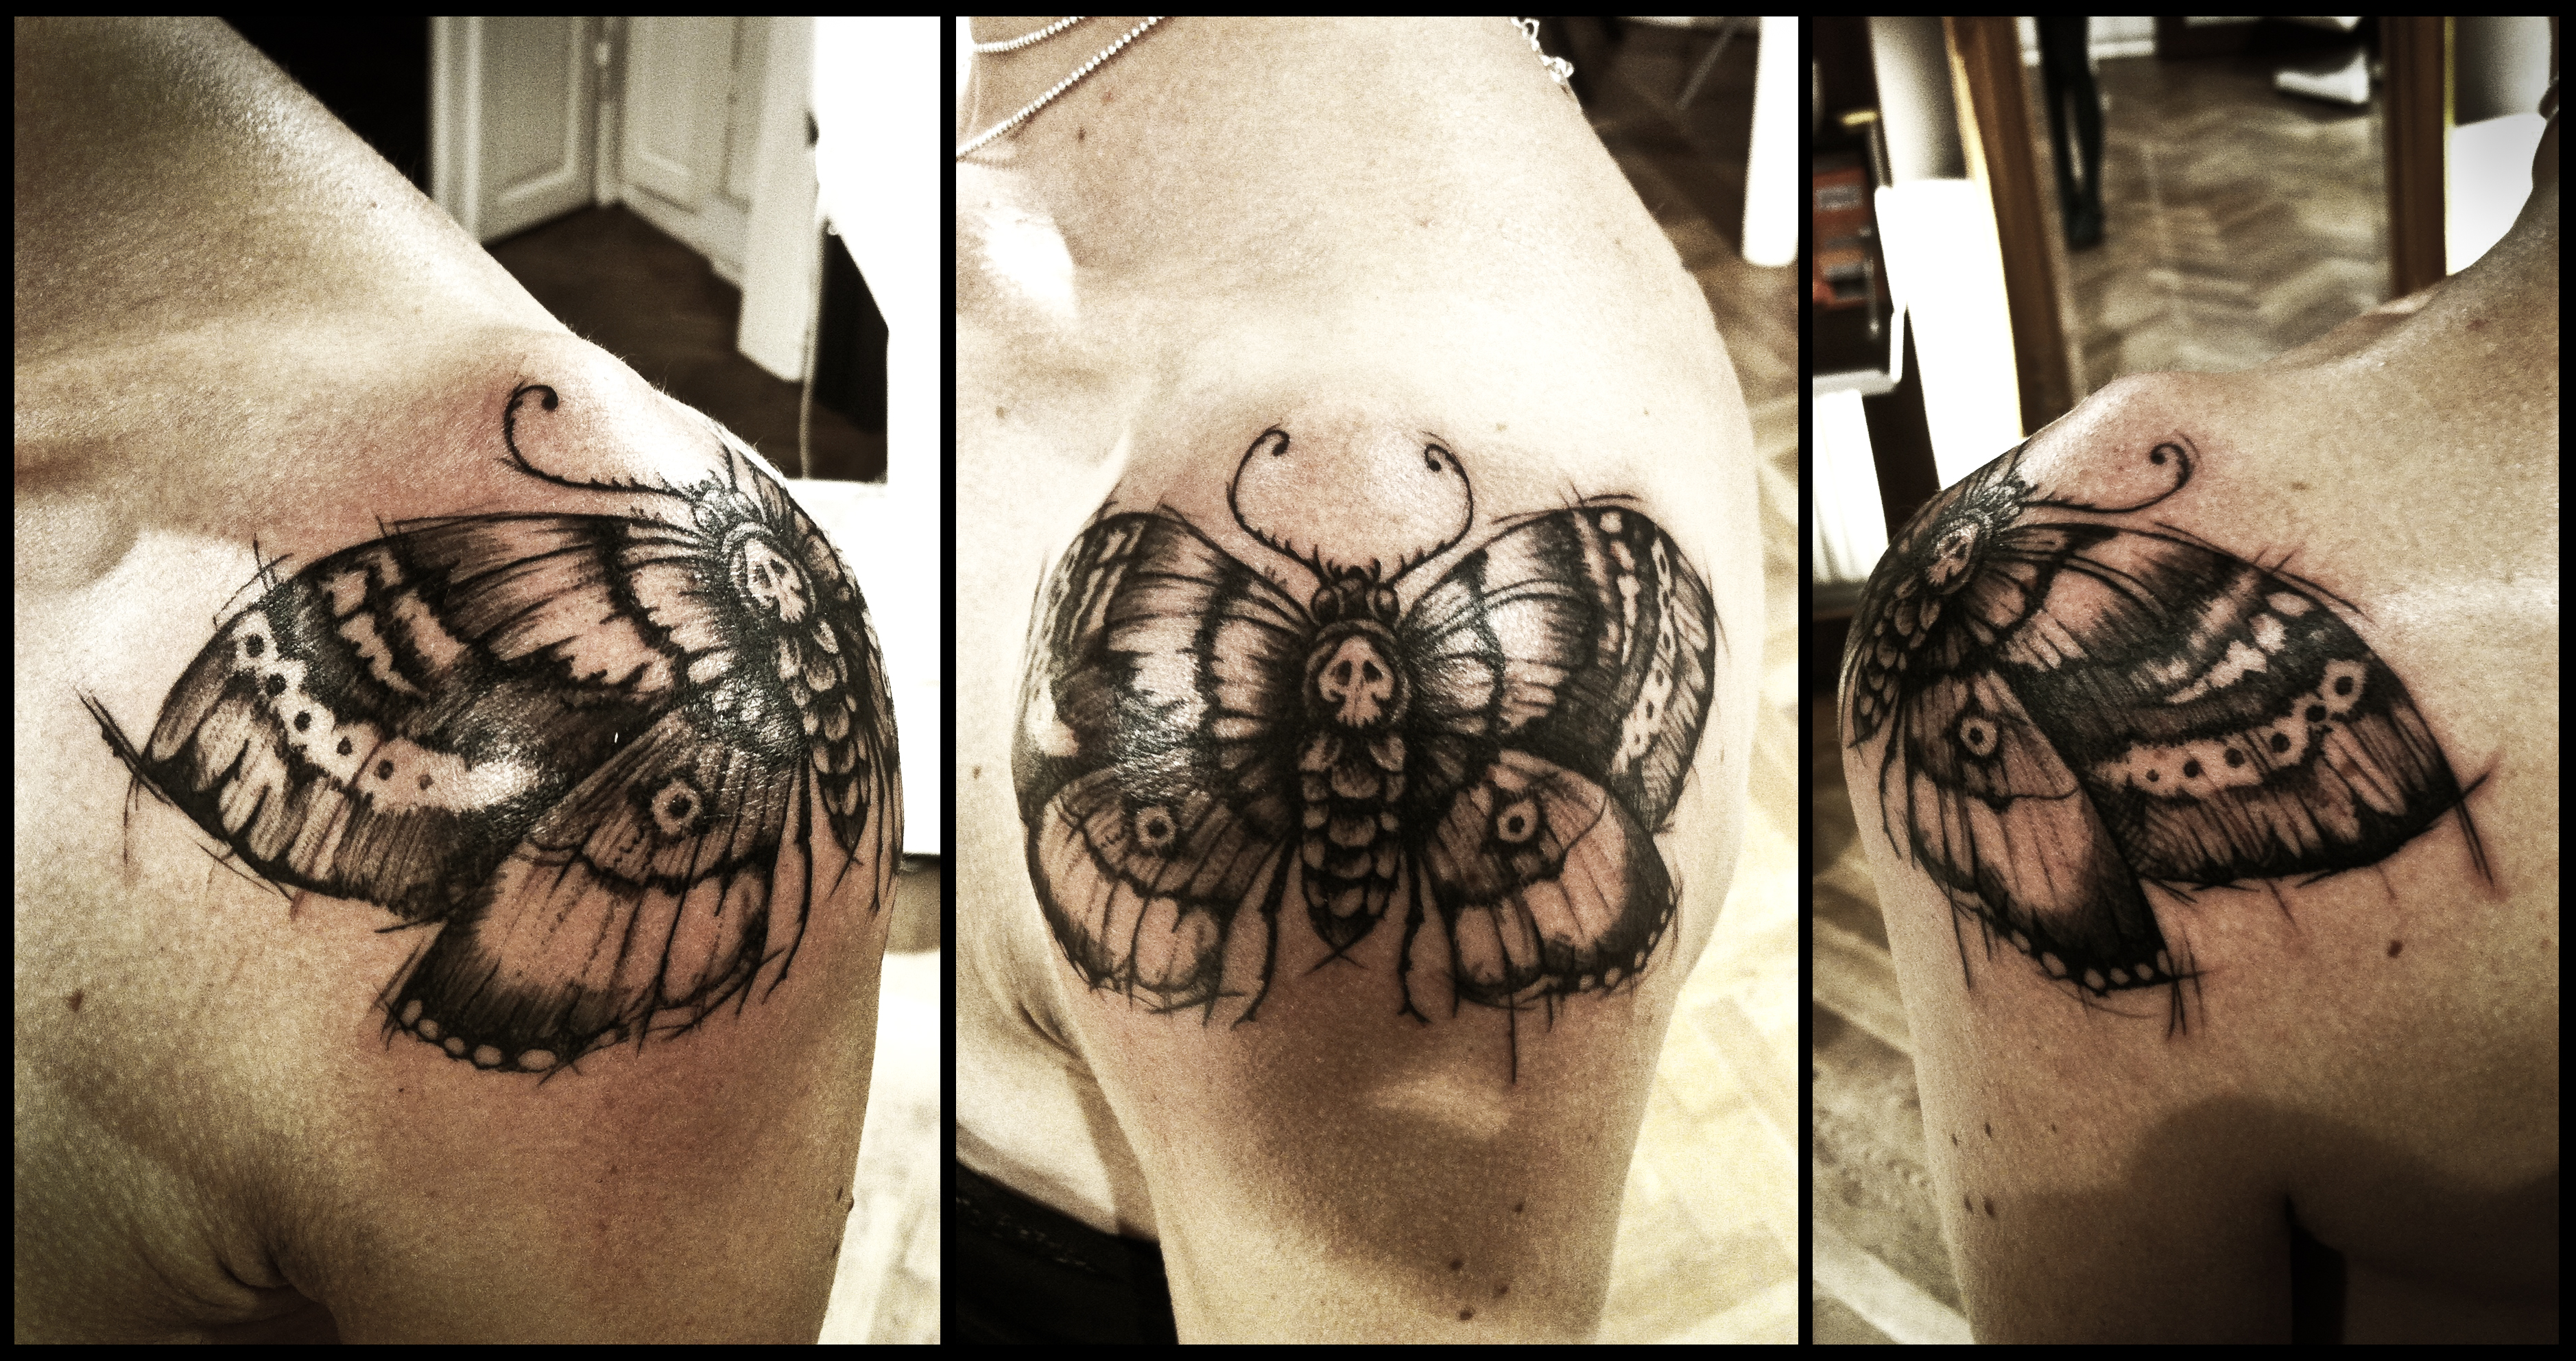 deathhead_moth_tattoo_by_meatshop_tattoo-d668yhm